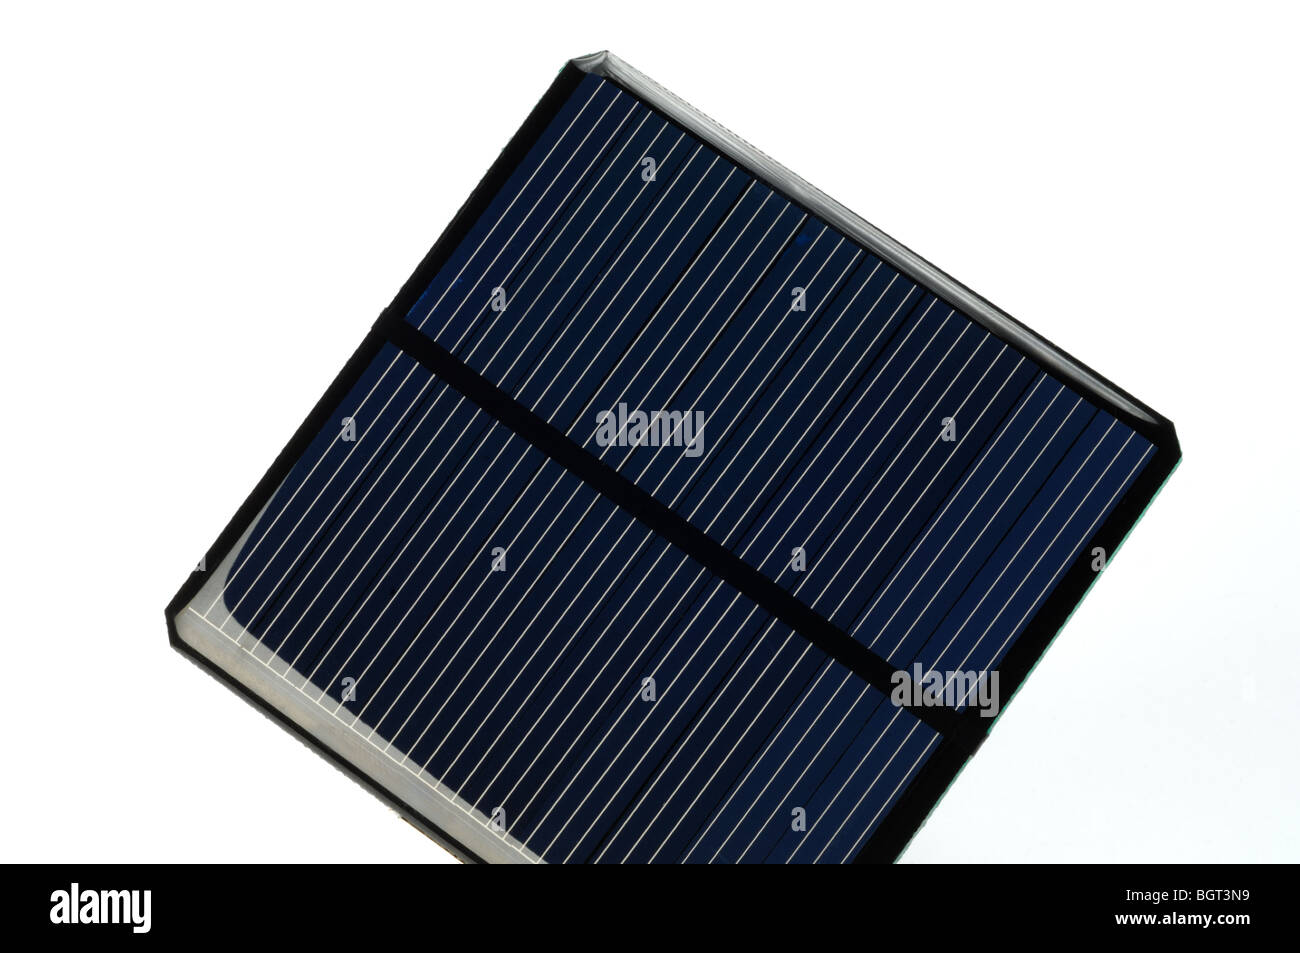 solar energy photos solar energy images alamy. Black Bedroom Furniture Sets. Home Design Ideas